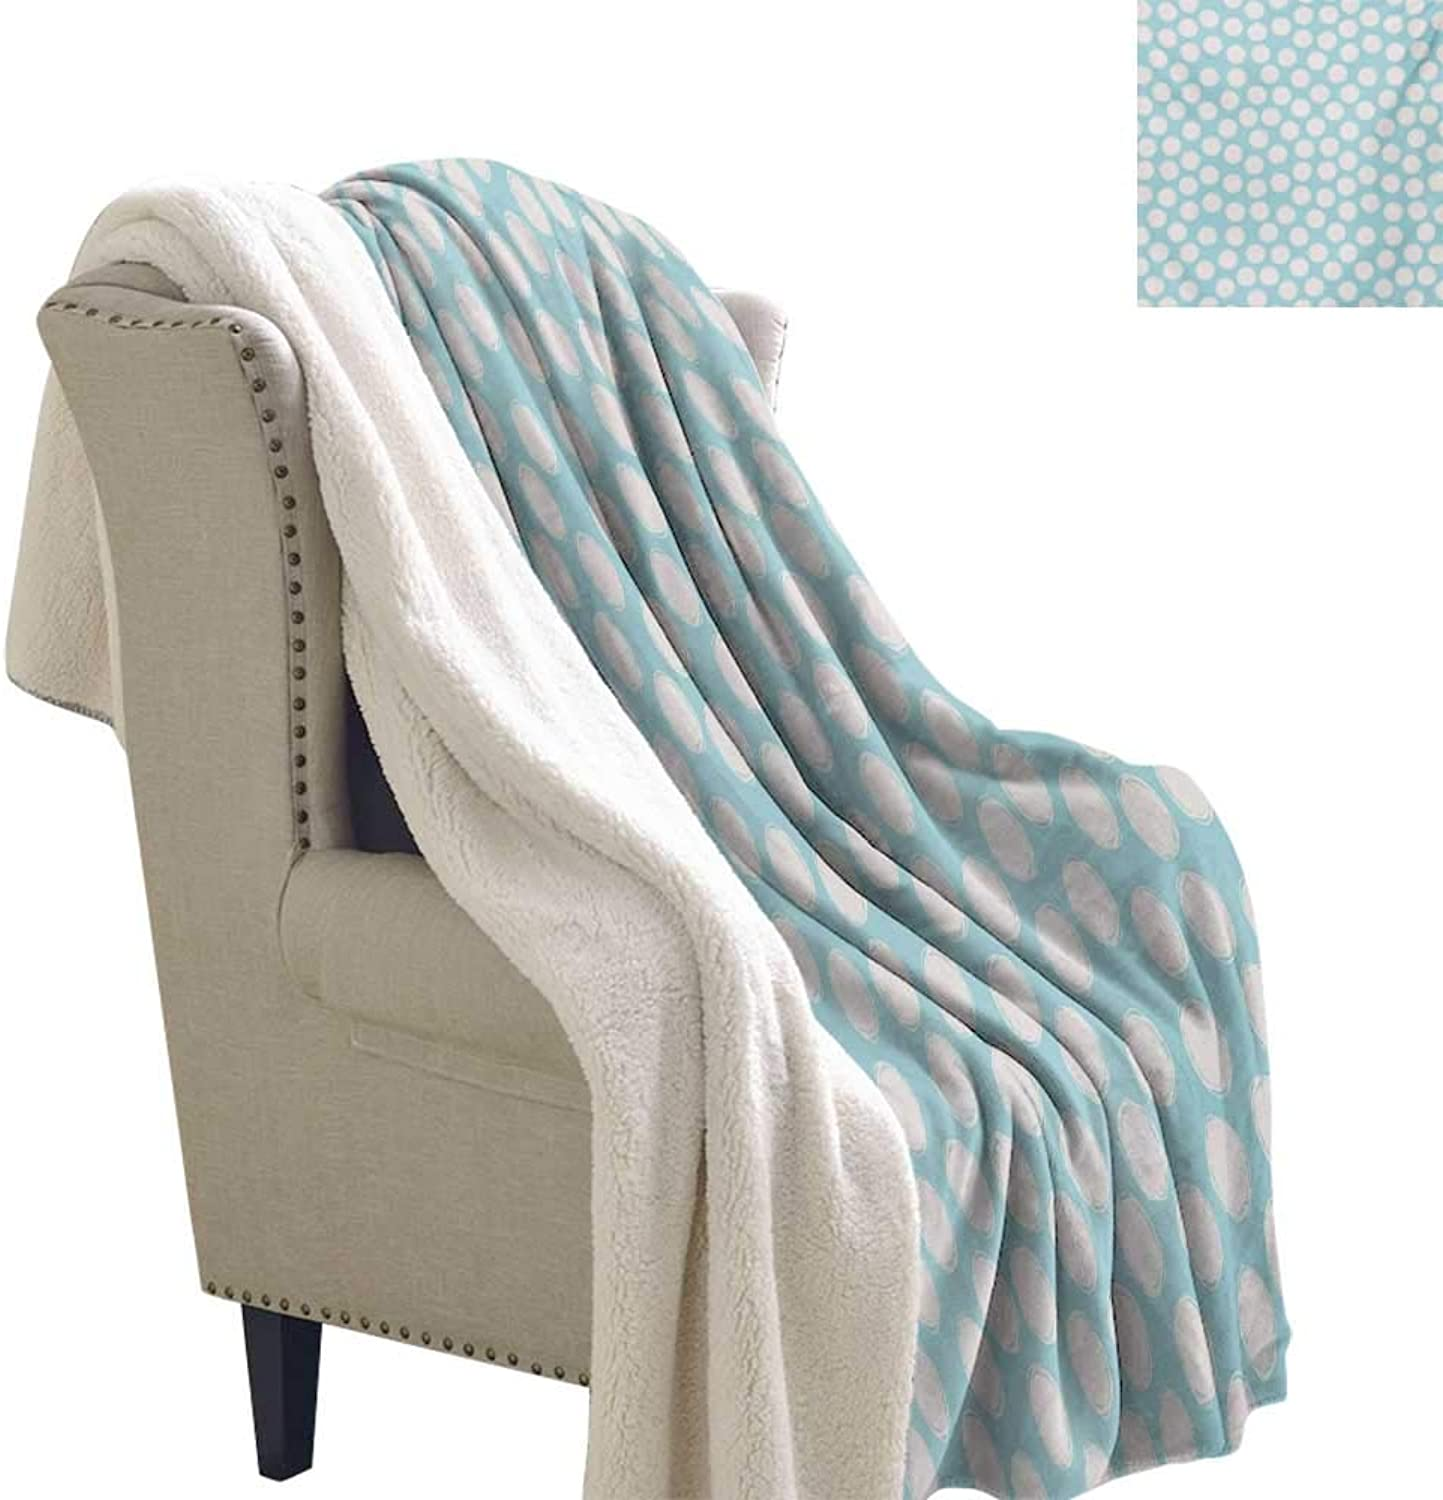 Sunnyhome Kids Lightweight Blanket 60x32 Inch Doodle Style Spots on a Pale bluee Background Artistic Boys Kids Baby Pattern Plush Throw Blanket Pale bluee and White